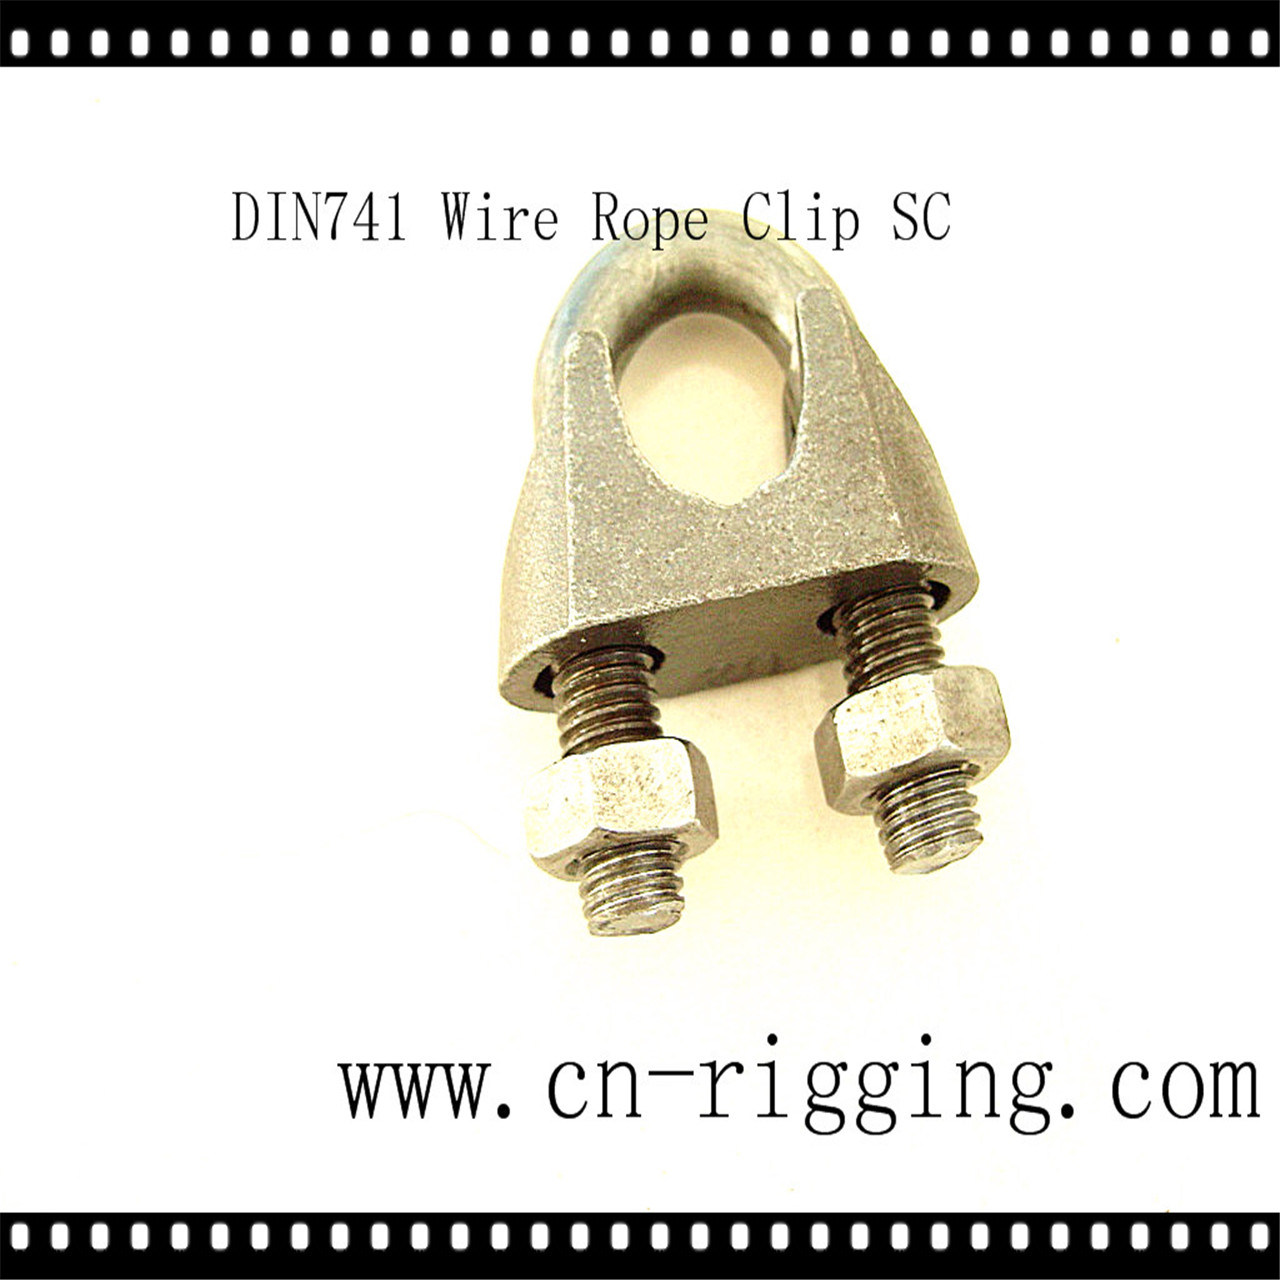 Hot Sale Wire Rope Clip DIN741 for Eye Loop Connection pictures & photos